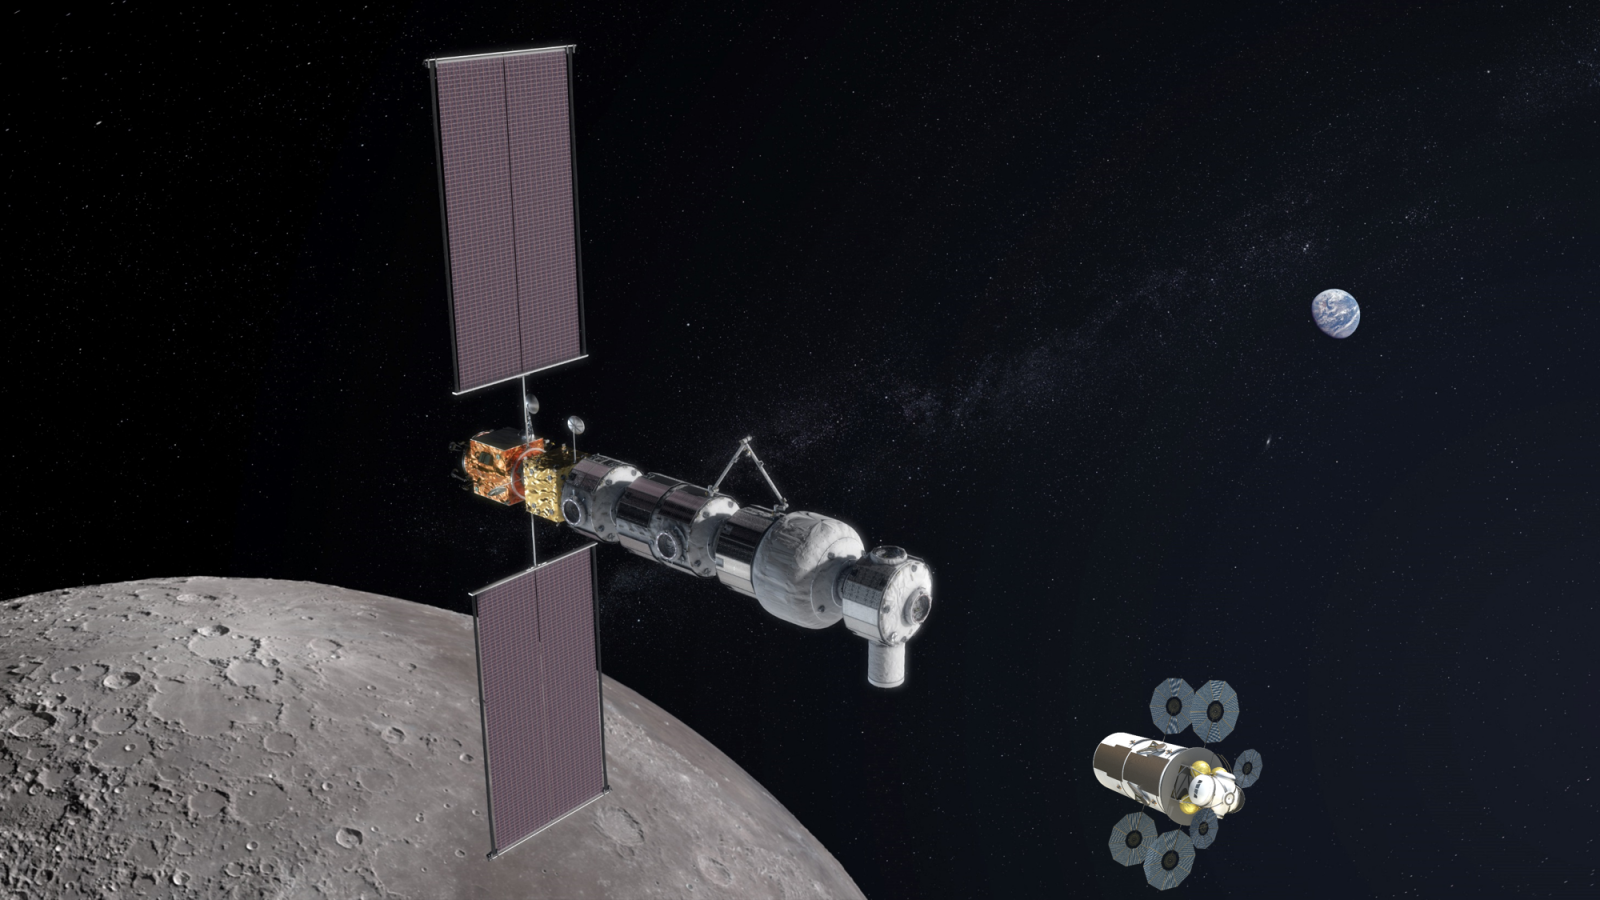 An artist's illustration of a completed lunar Gateway flying around the Moon with a commercially-developed lunar lander. Image Credit: NASA